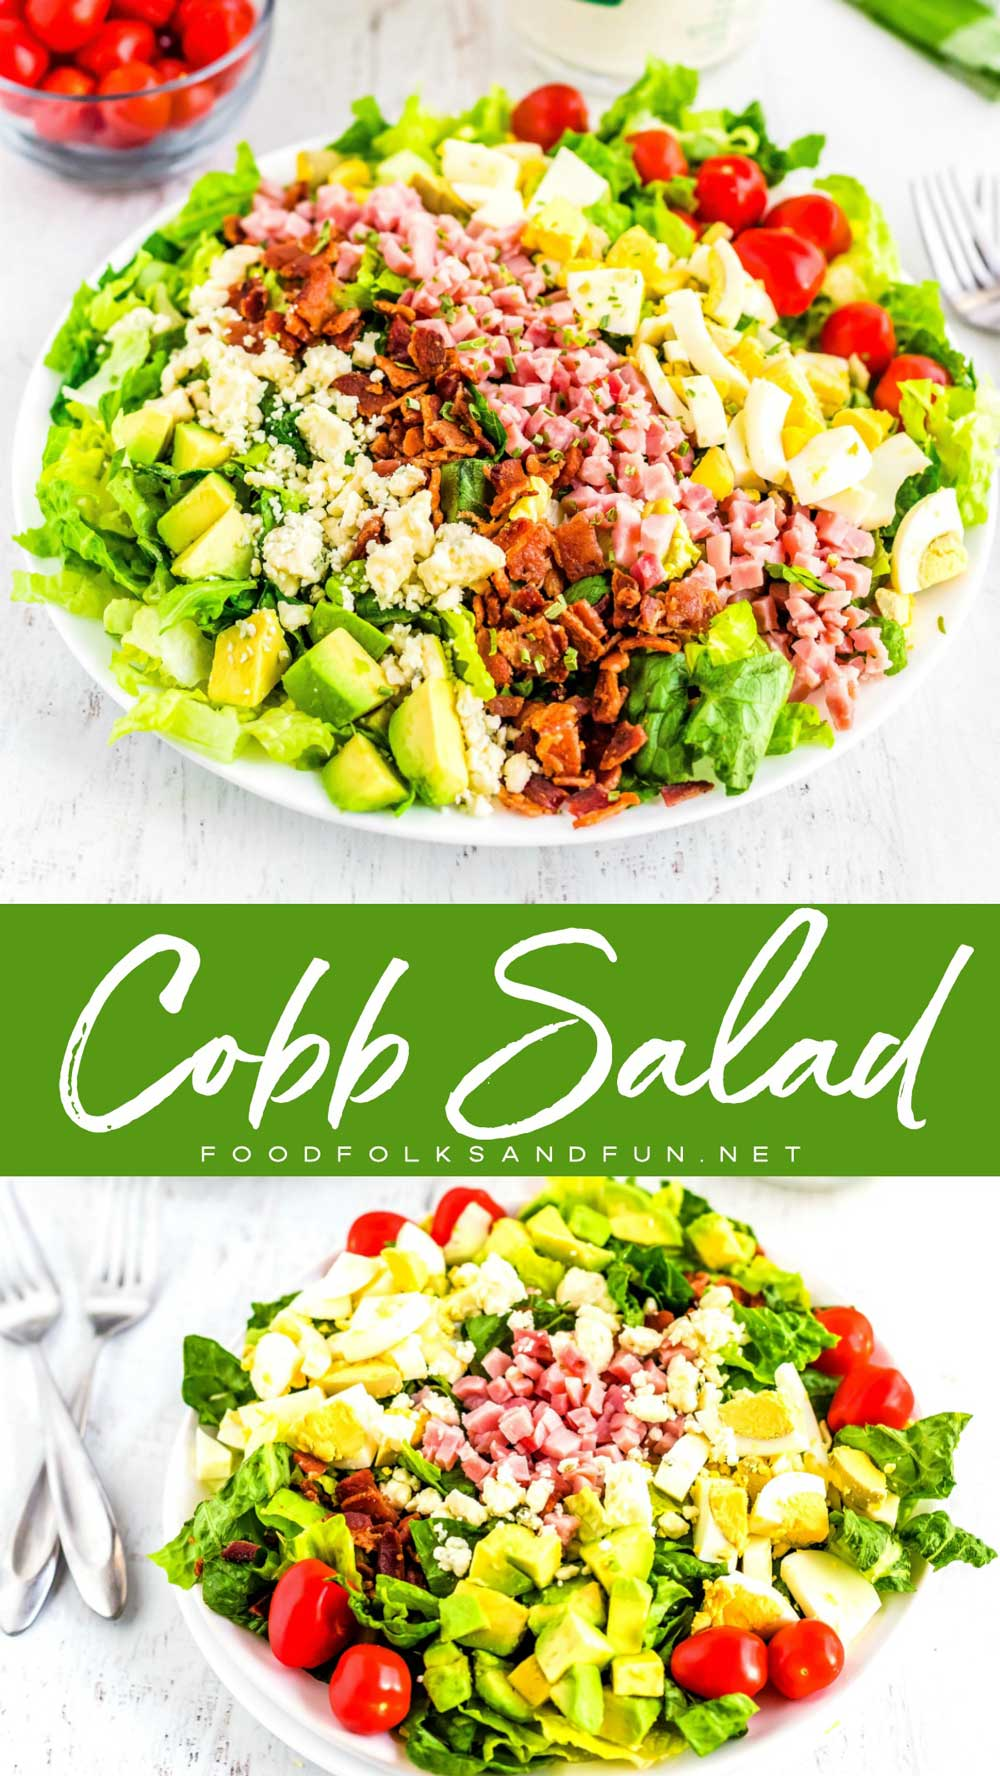 This Cobb Salad recipe is the perfect entree salad recipe. It's also a great way to use up leftover Easter ham and hard boiled eggs. #eggs #EggsRecipe #HardBoiledEggs #Salad #SaladRecipe #EasyRecipe #ComfortFood #Easter #EasterRecipe #LeftoverHam #EasterHam #foodfolksandfun via @foodfolksandfun